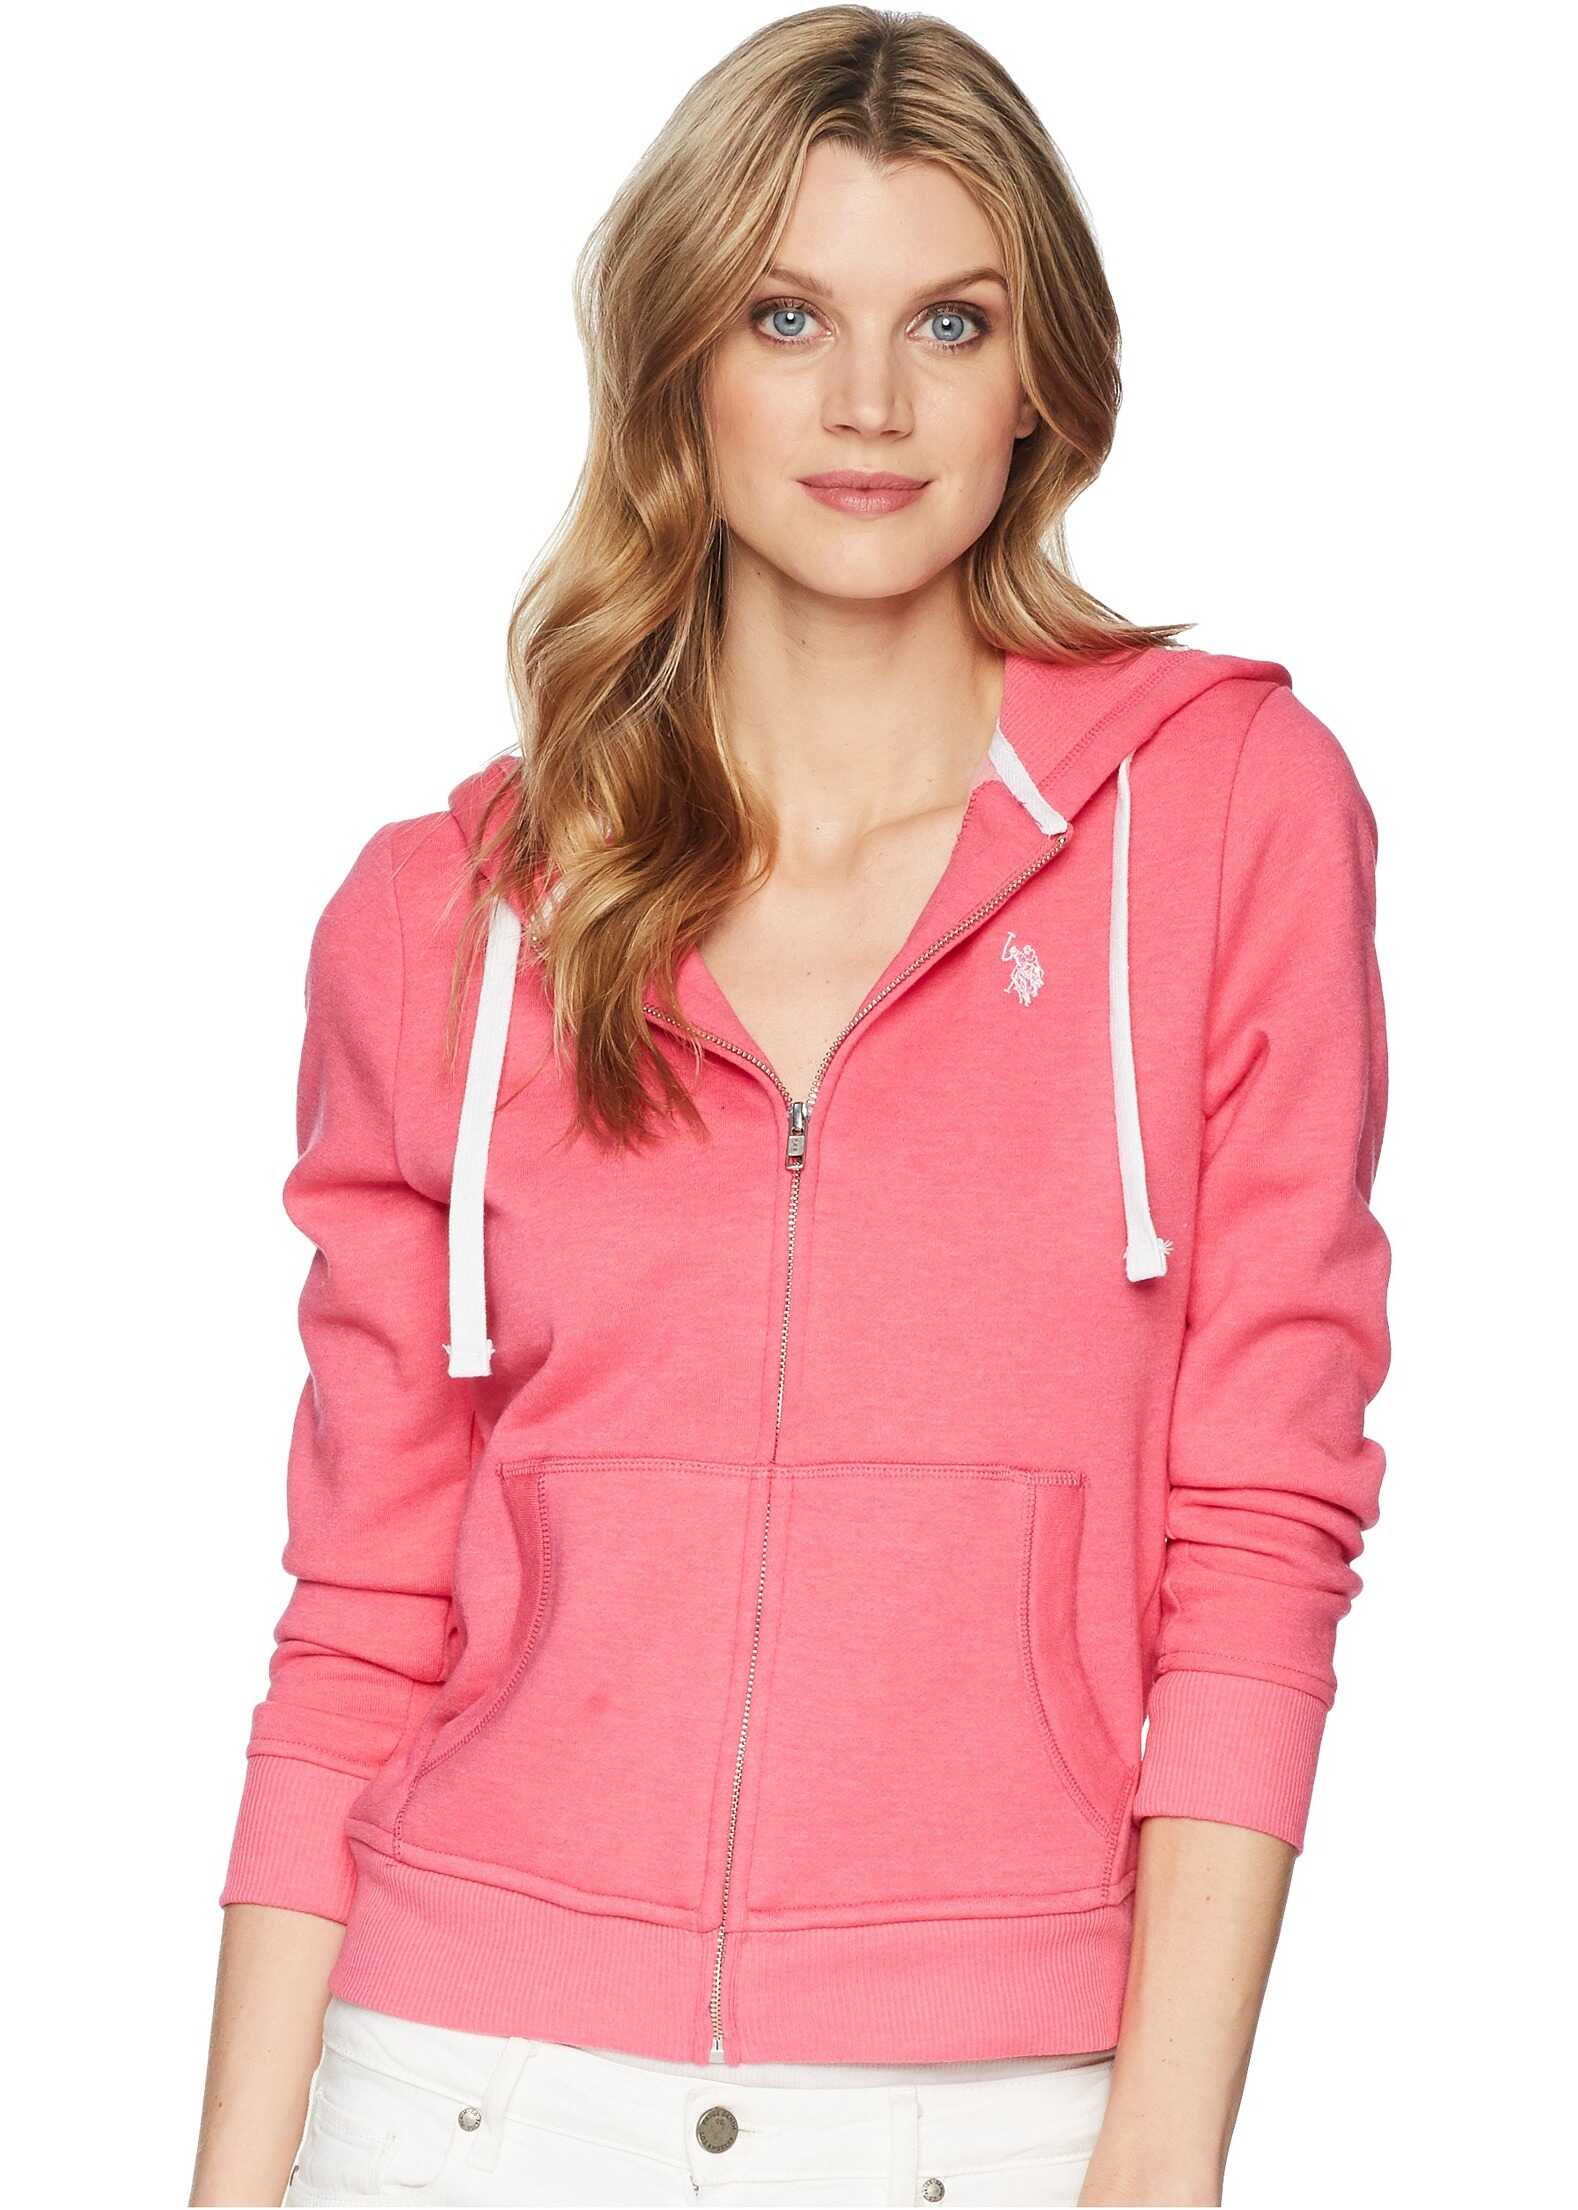 U.S. POLO ASSN. Zip-Up Fleece Hoodie Pink Oleander